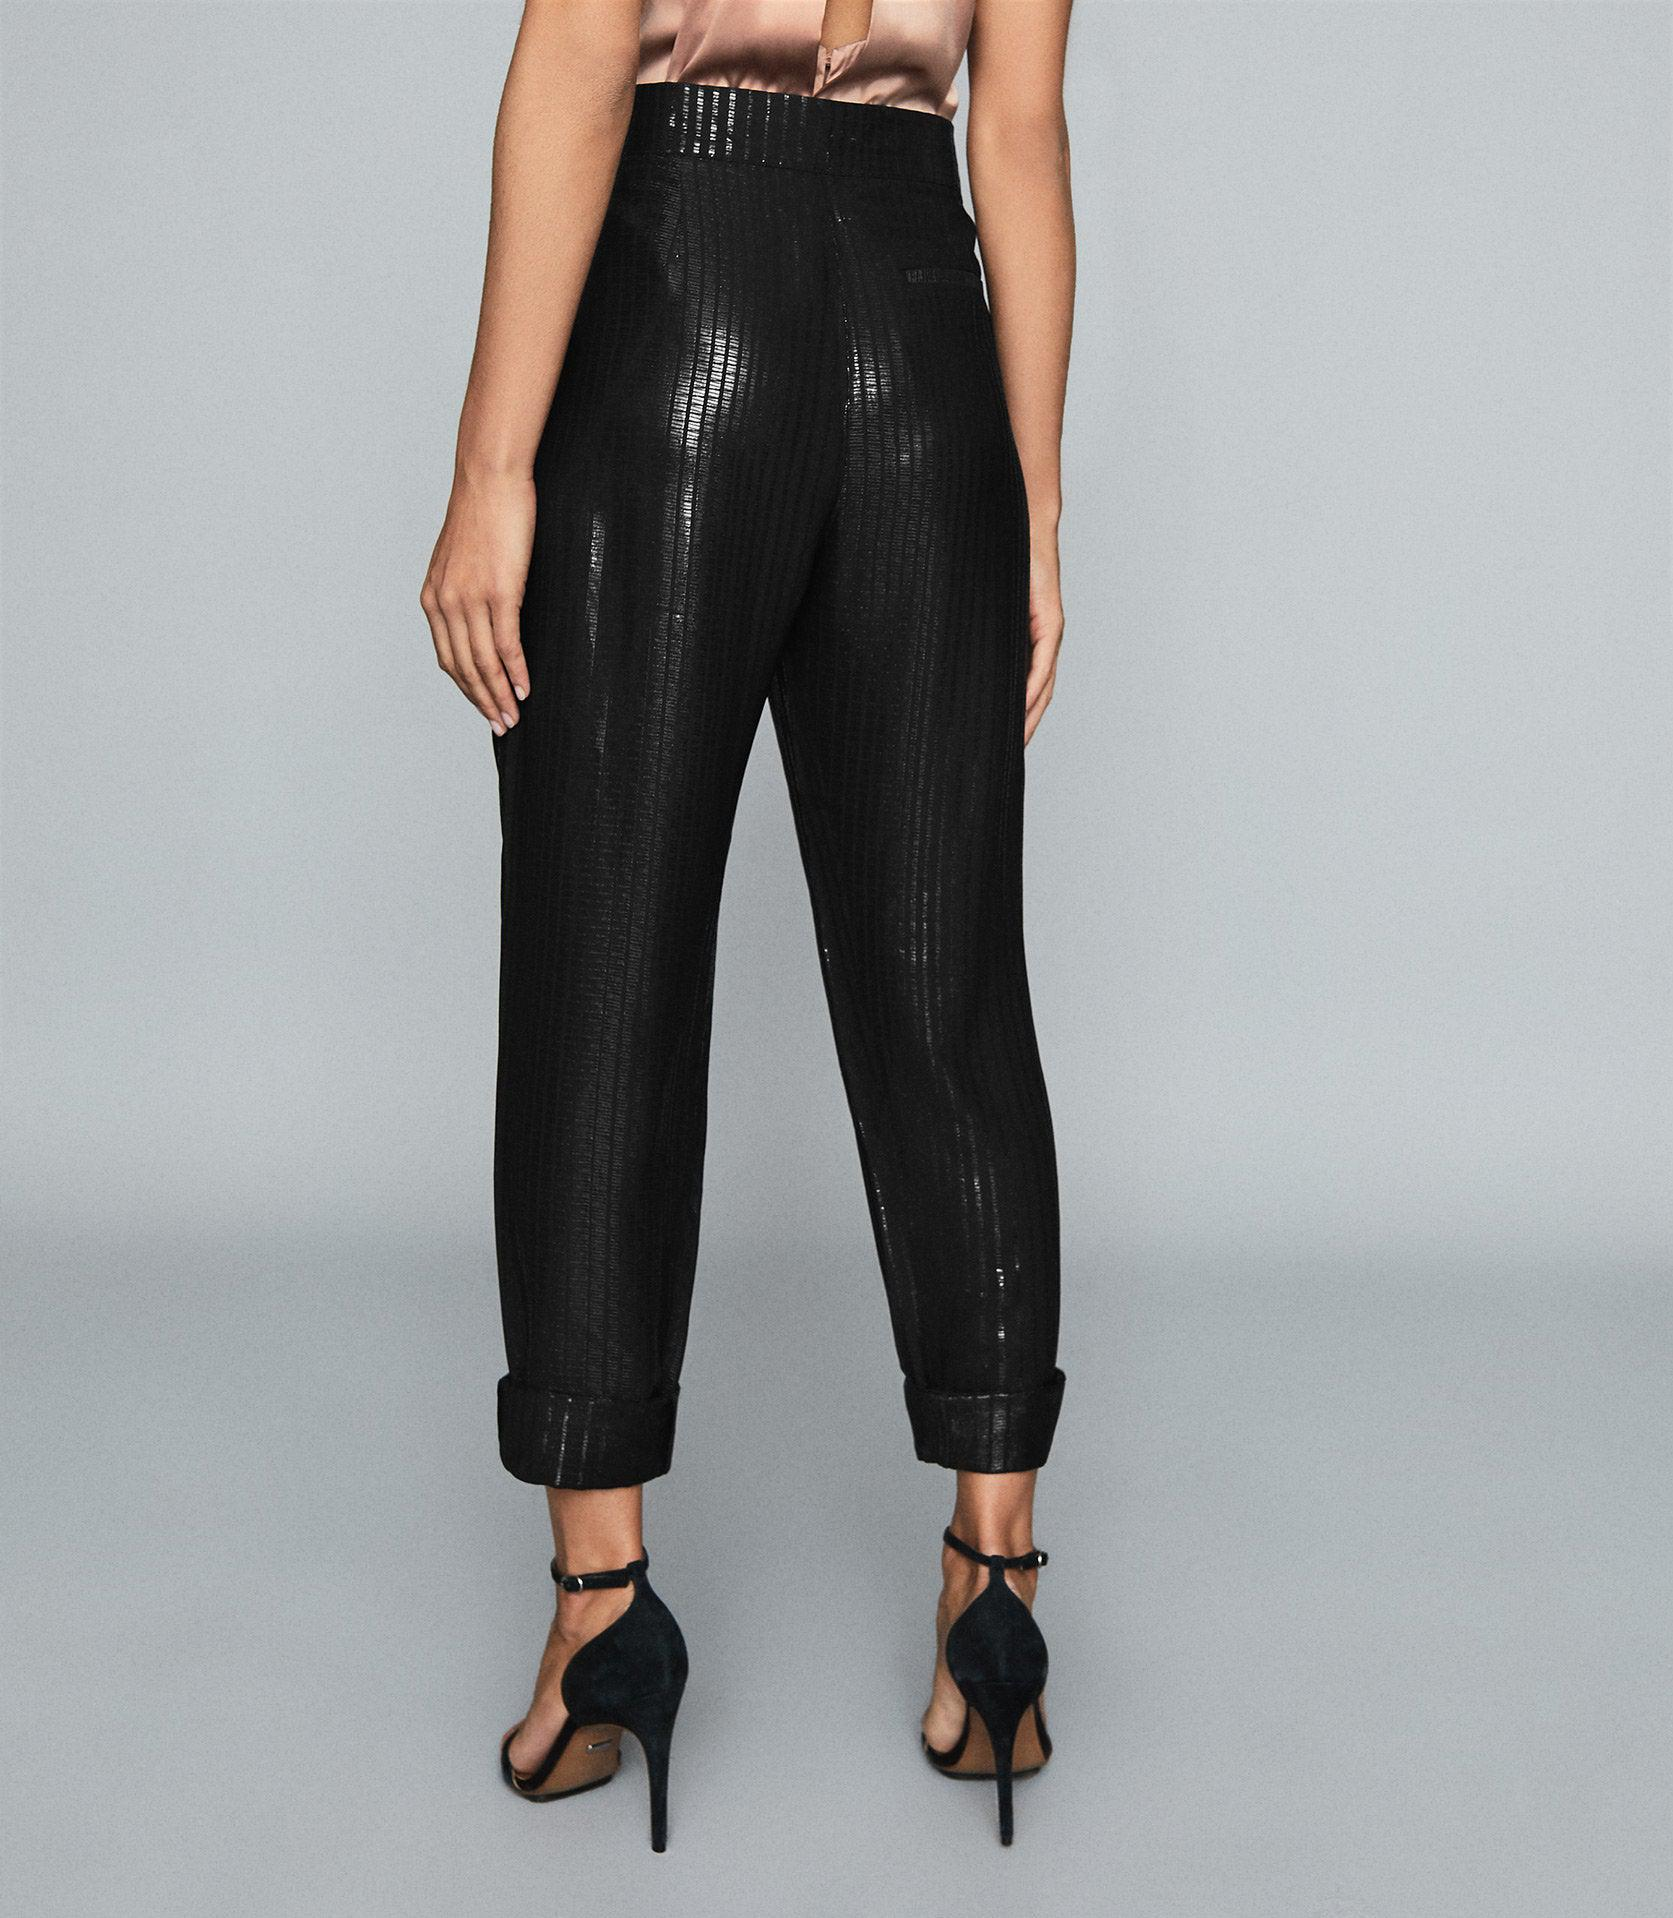 PENNIE - TAPERED SHIMMER TROUSERS 2